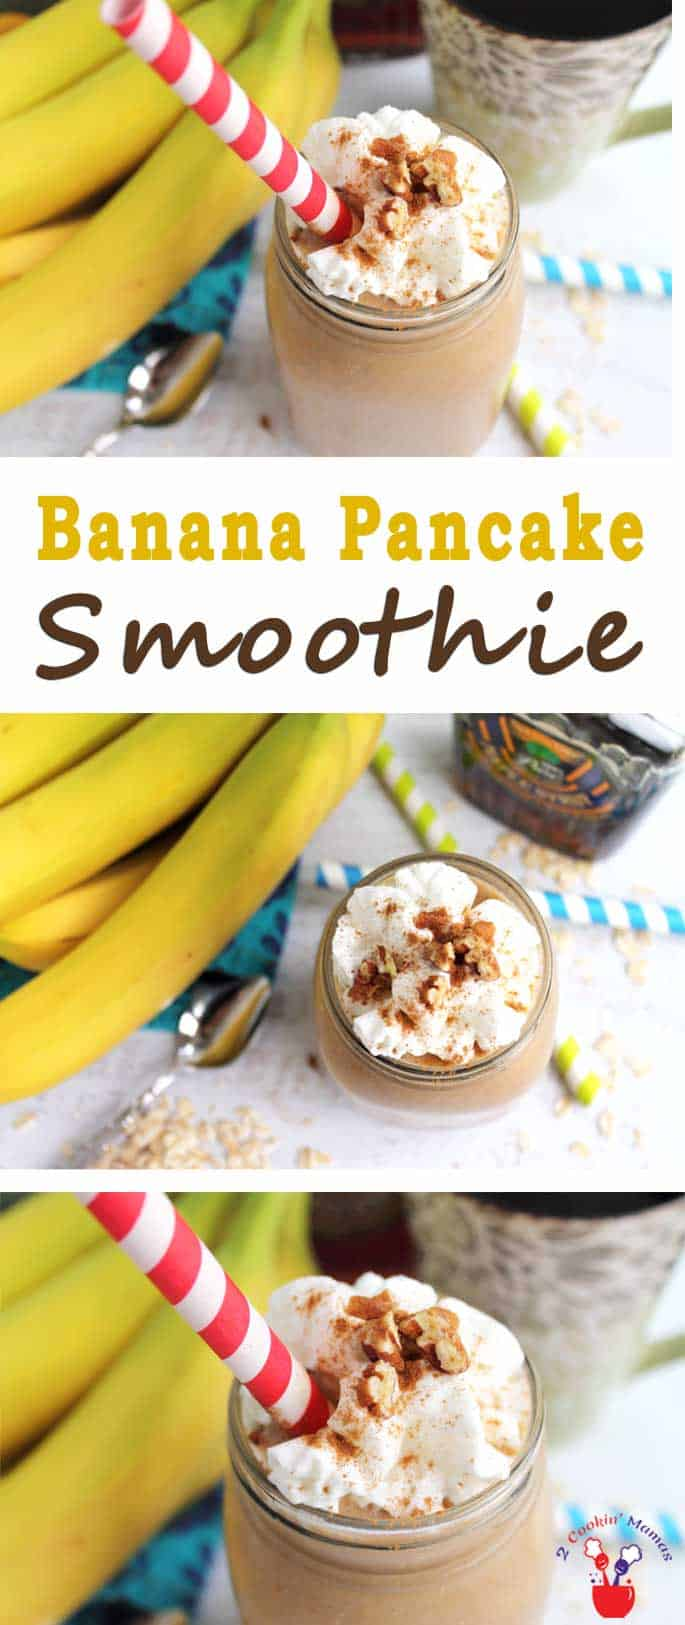 Banana Pancake Smoothie | 2 Cookin Mamas A healthy breakfast to start your day with the taste of pancakes. This Banana Pancake Smoothie is full of protein + a healthy dose of wake-me up coffee. #recipe #healthy #breakfast